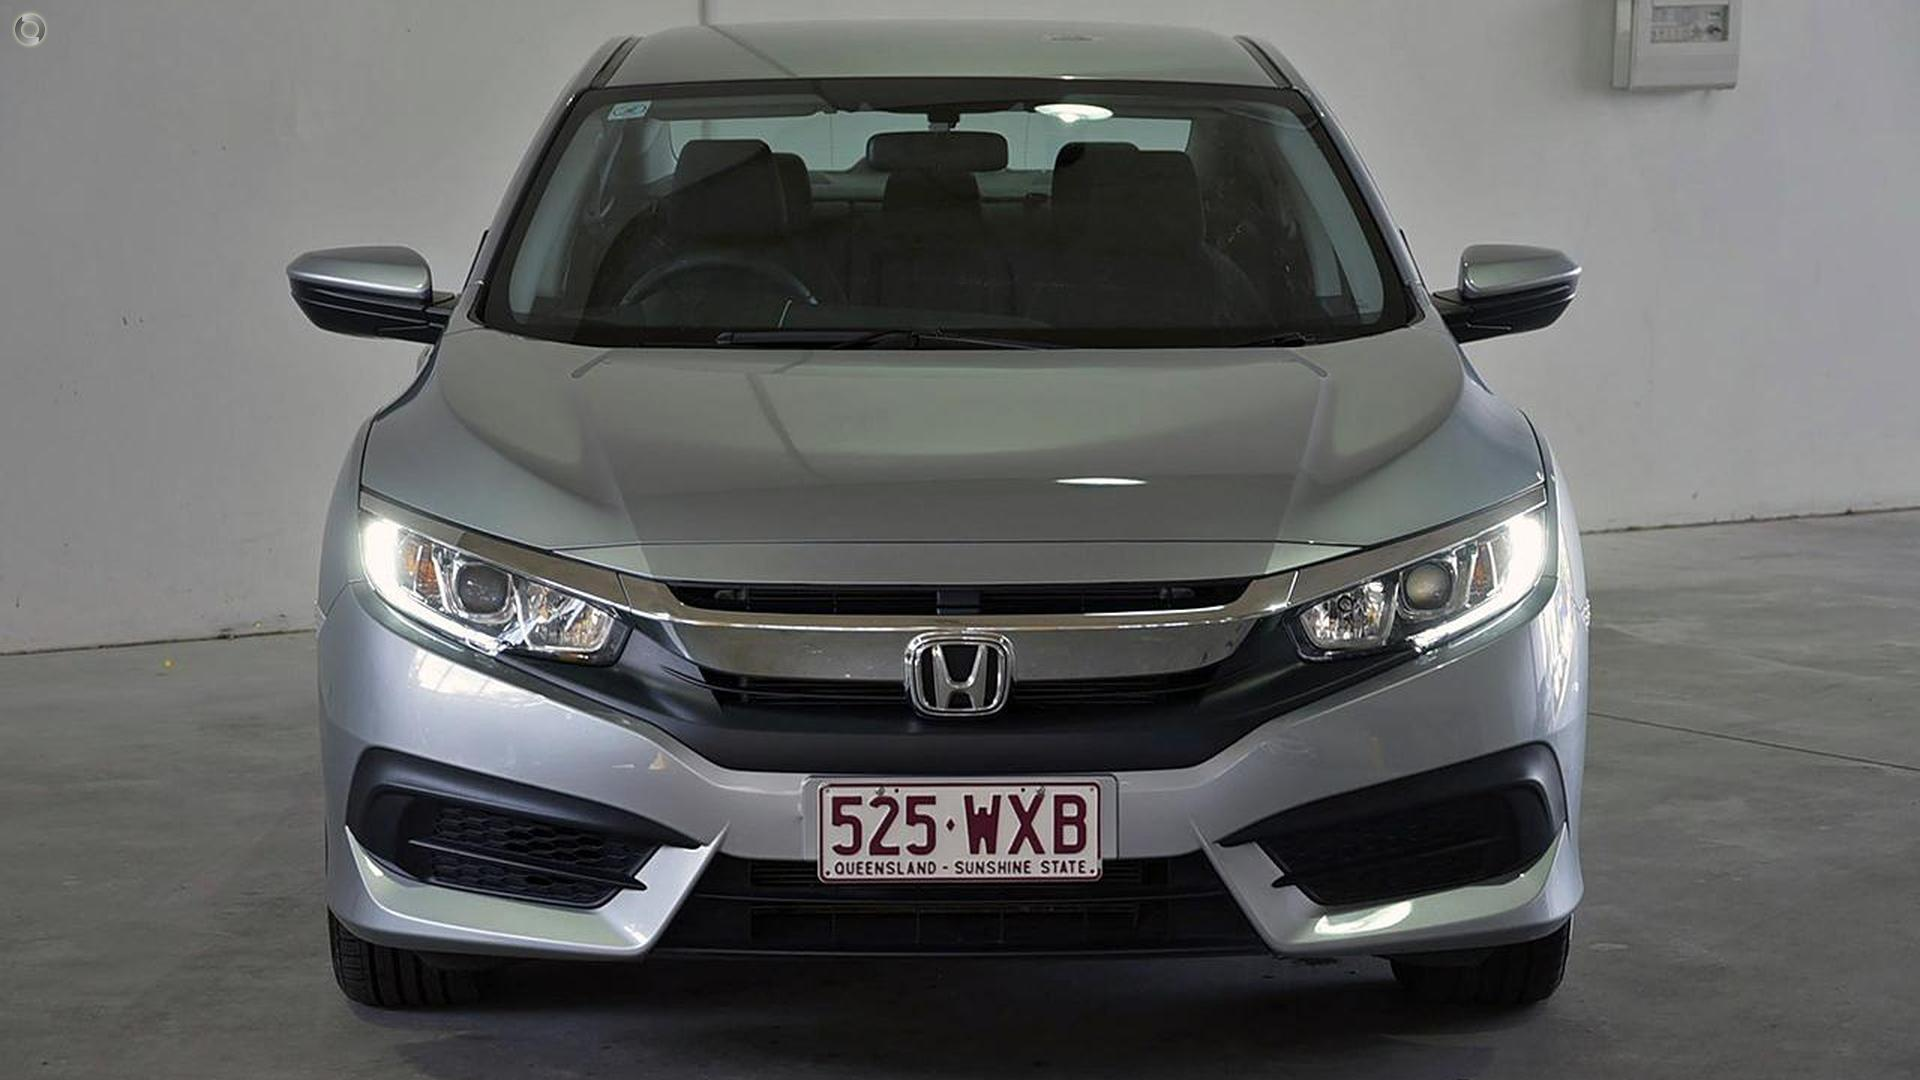 2016 Honda Civic VTi 10th Gen